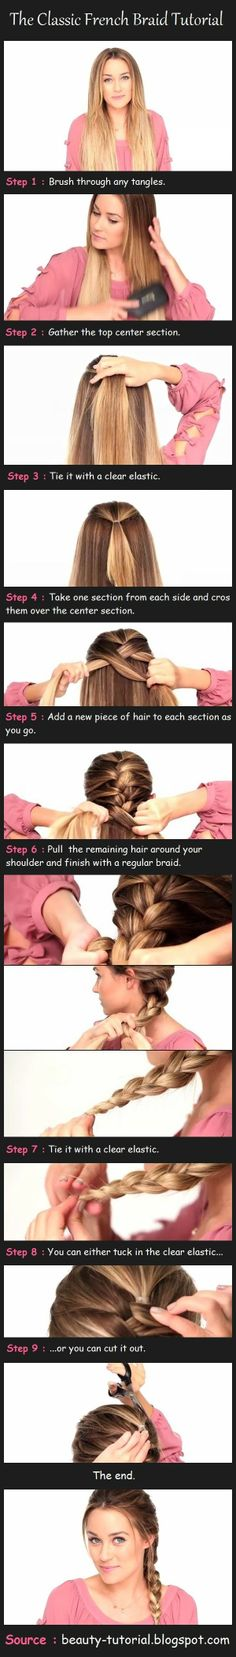 French braid tutorial - my problem prior to this was keeping it tight.. Perfect! If only I had thought about this